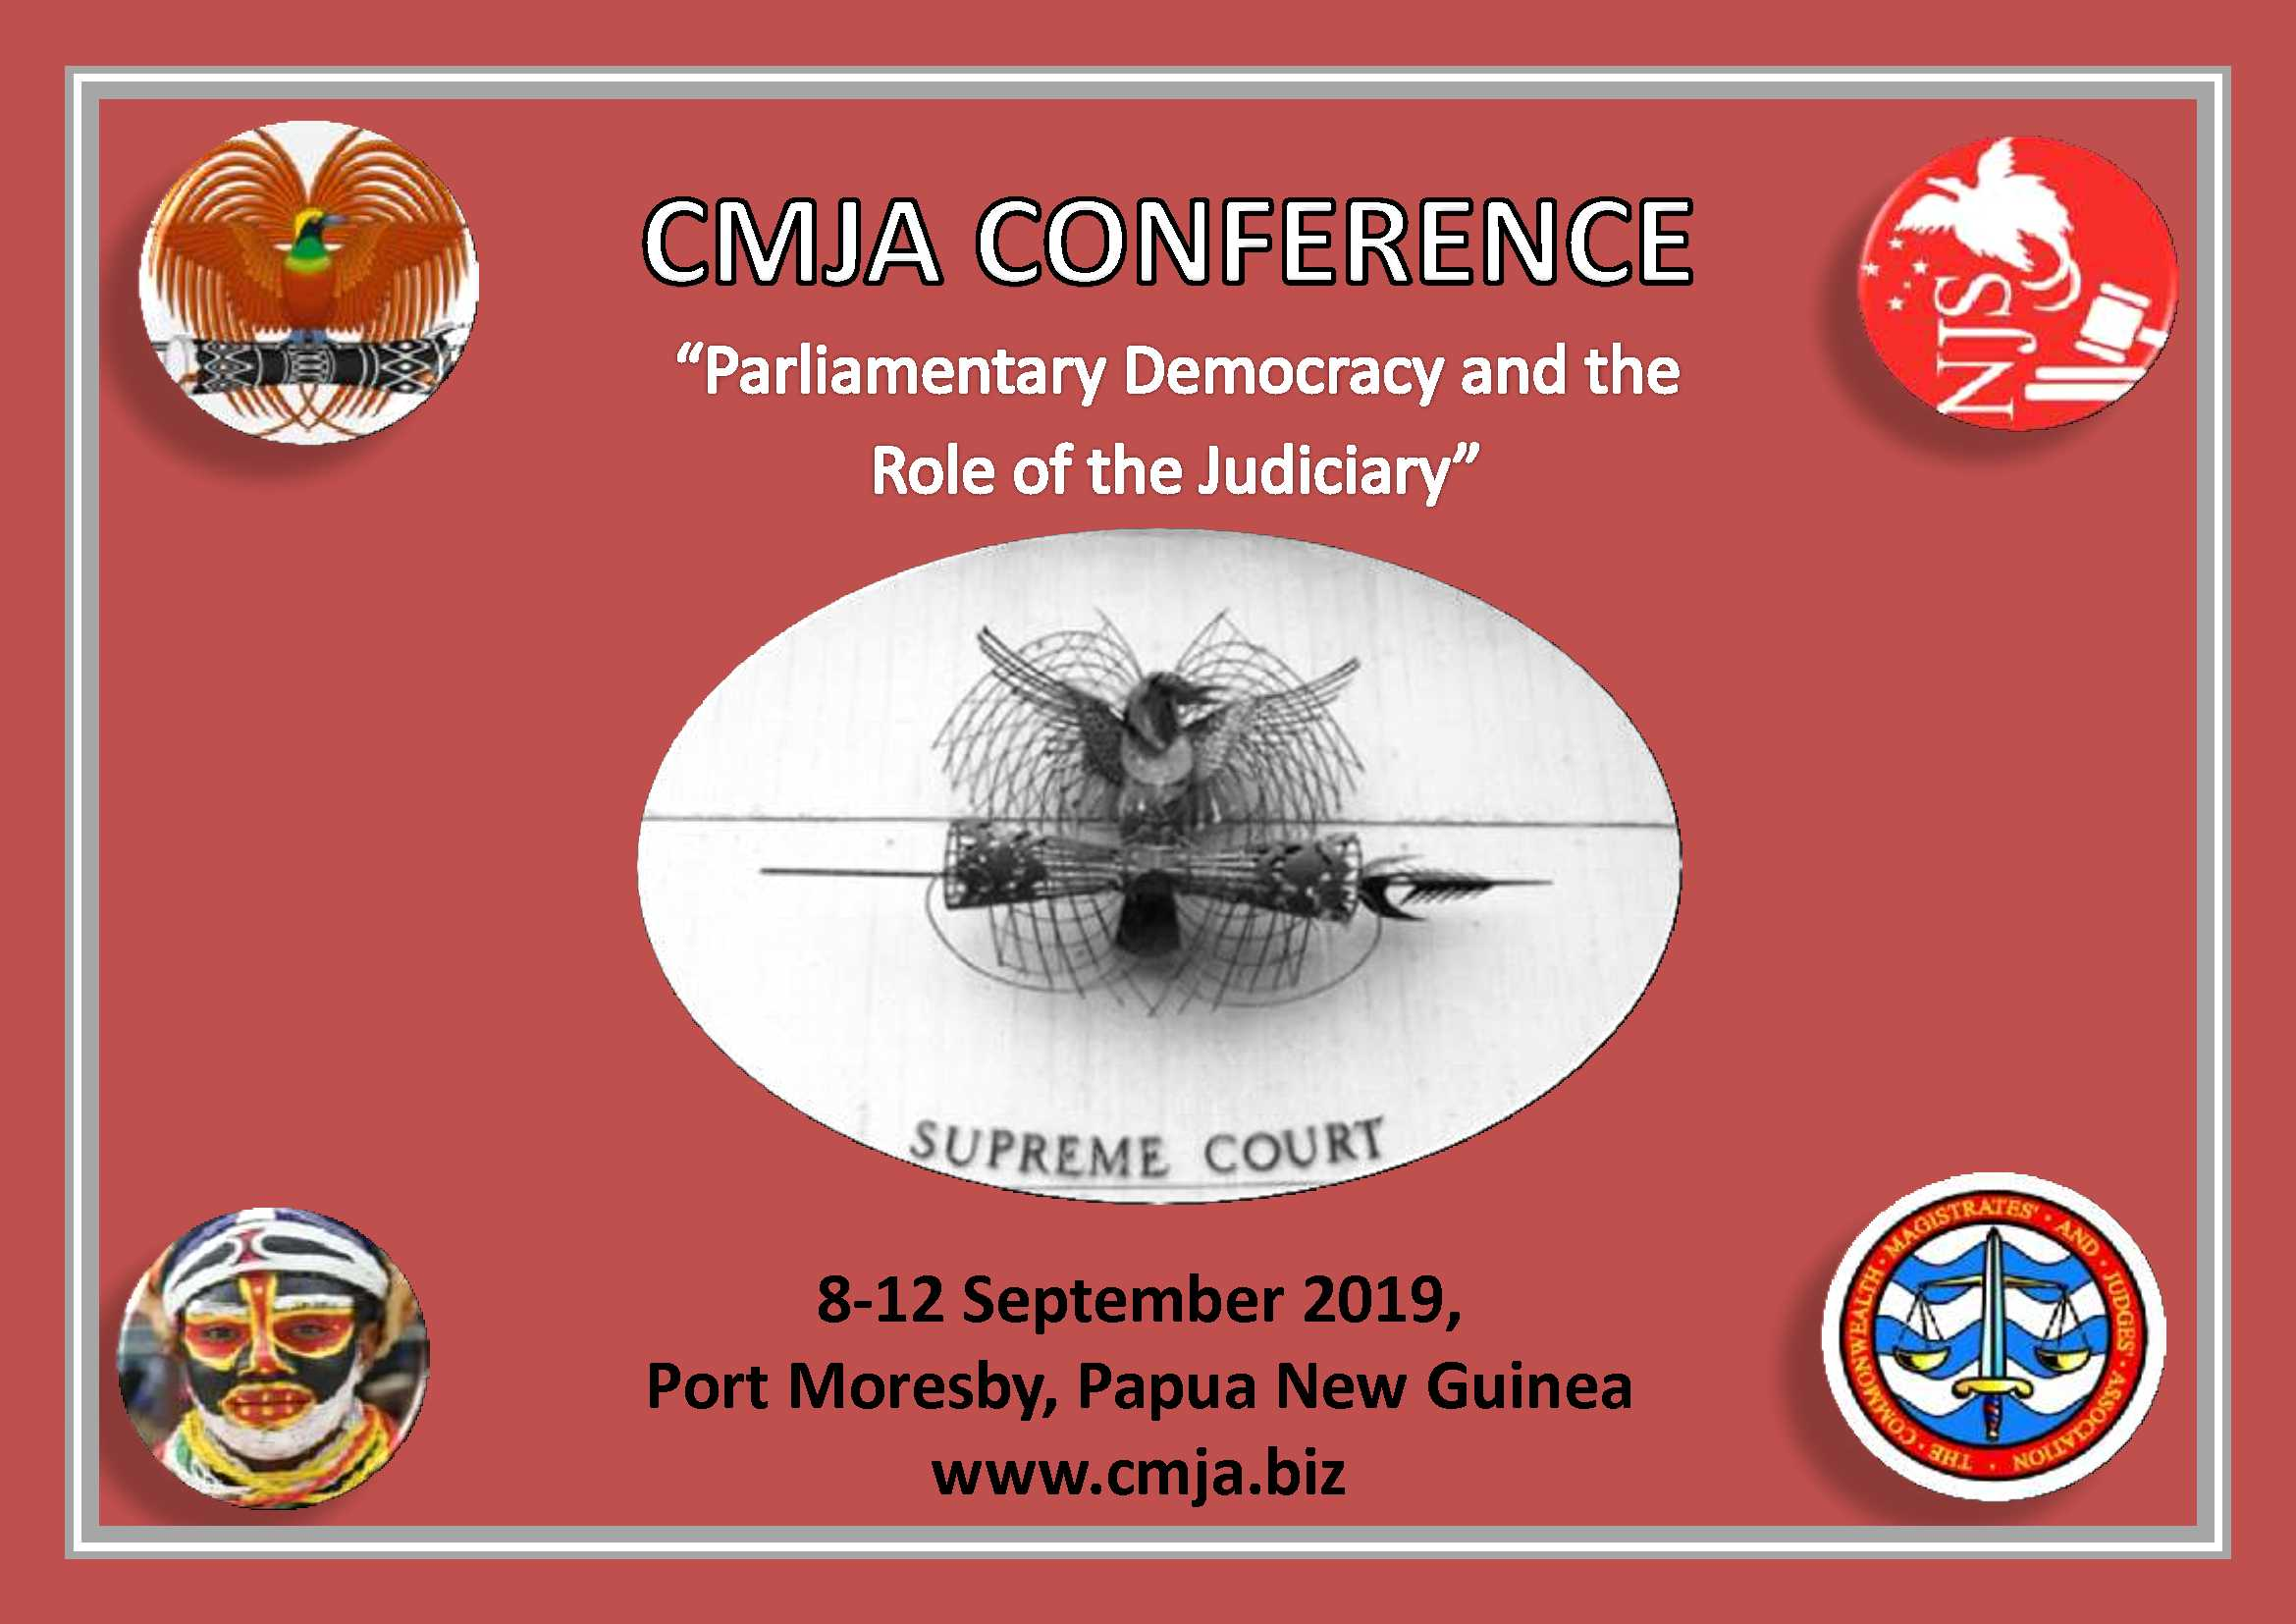 CMJA 2019 Conference | Port Moresby, Papua New Guinea, 8th -12th